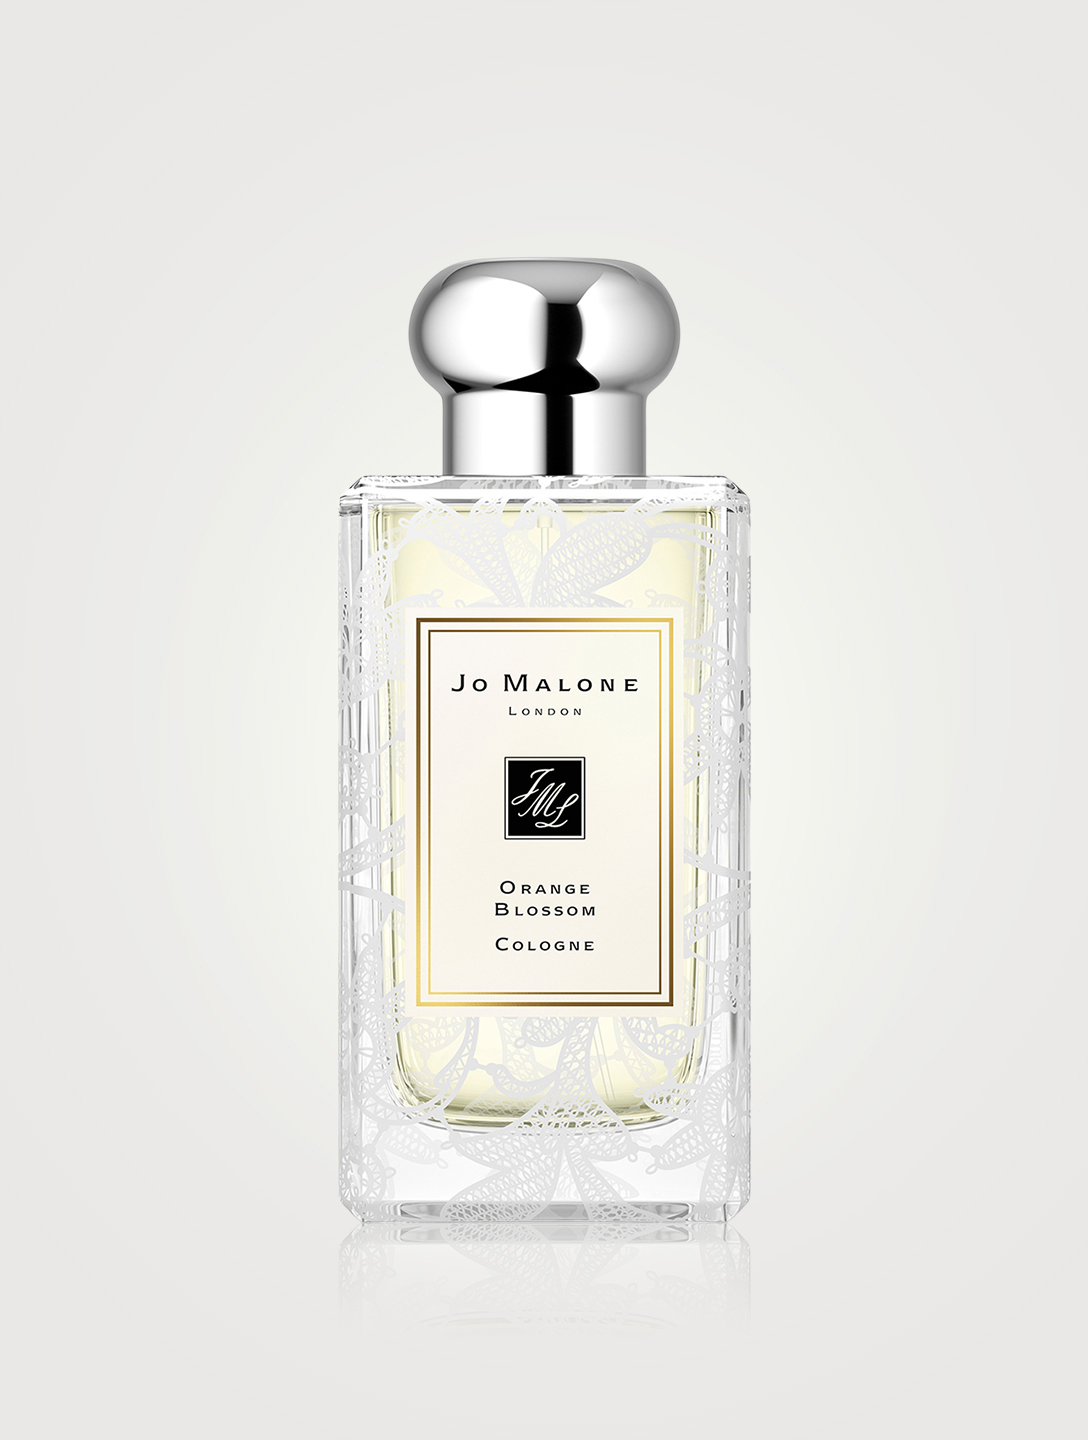 JO MALONE LONDON Orange Blossom Cologne with Daisy Leaf Lace Design Beauty